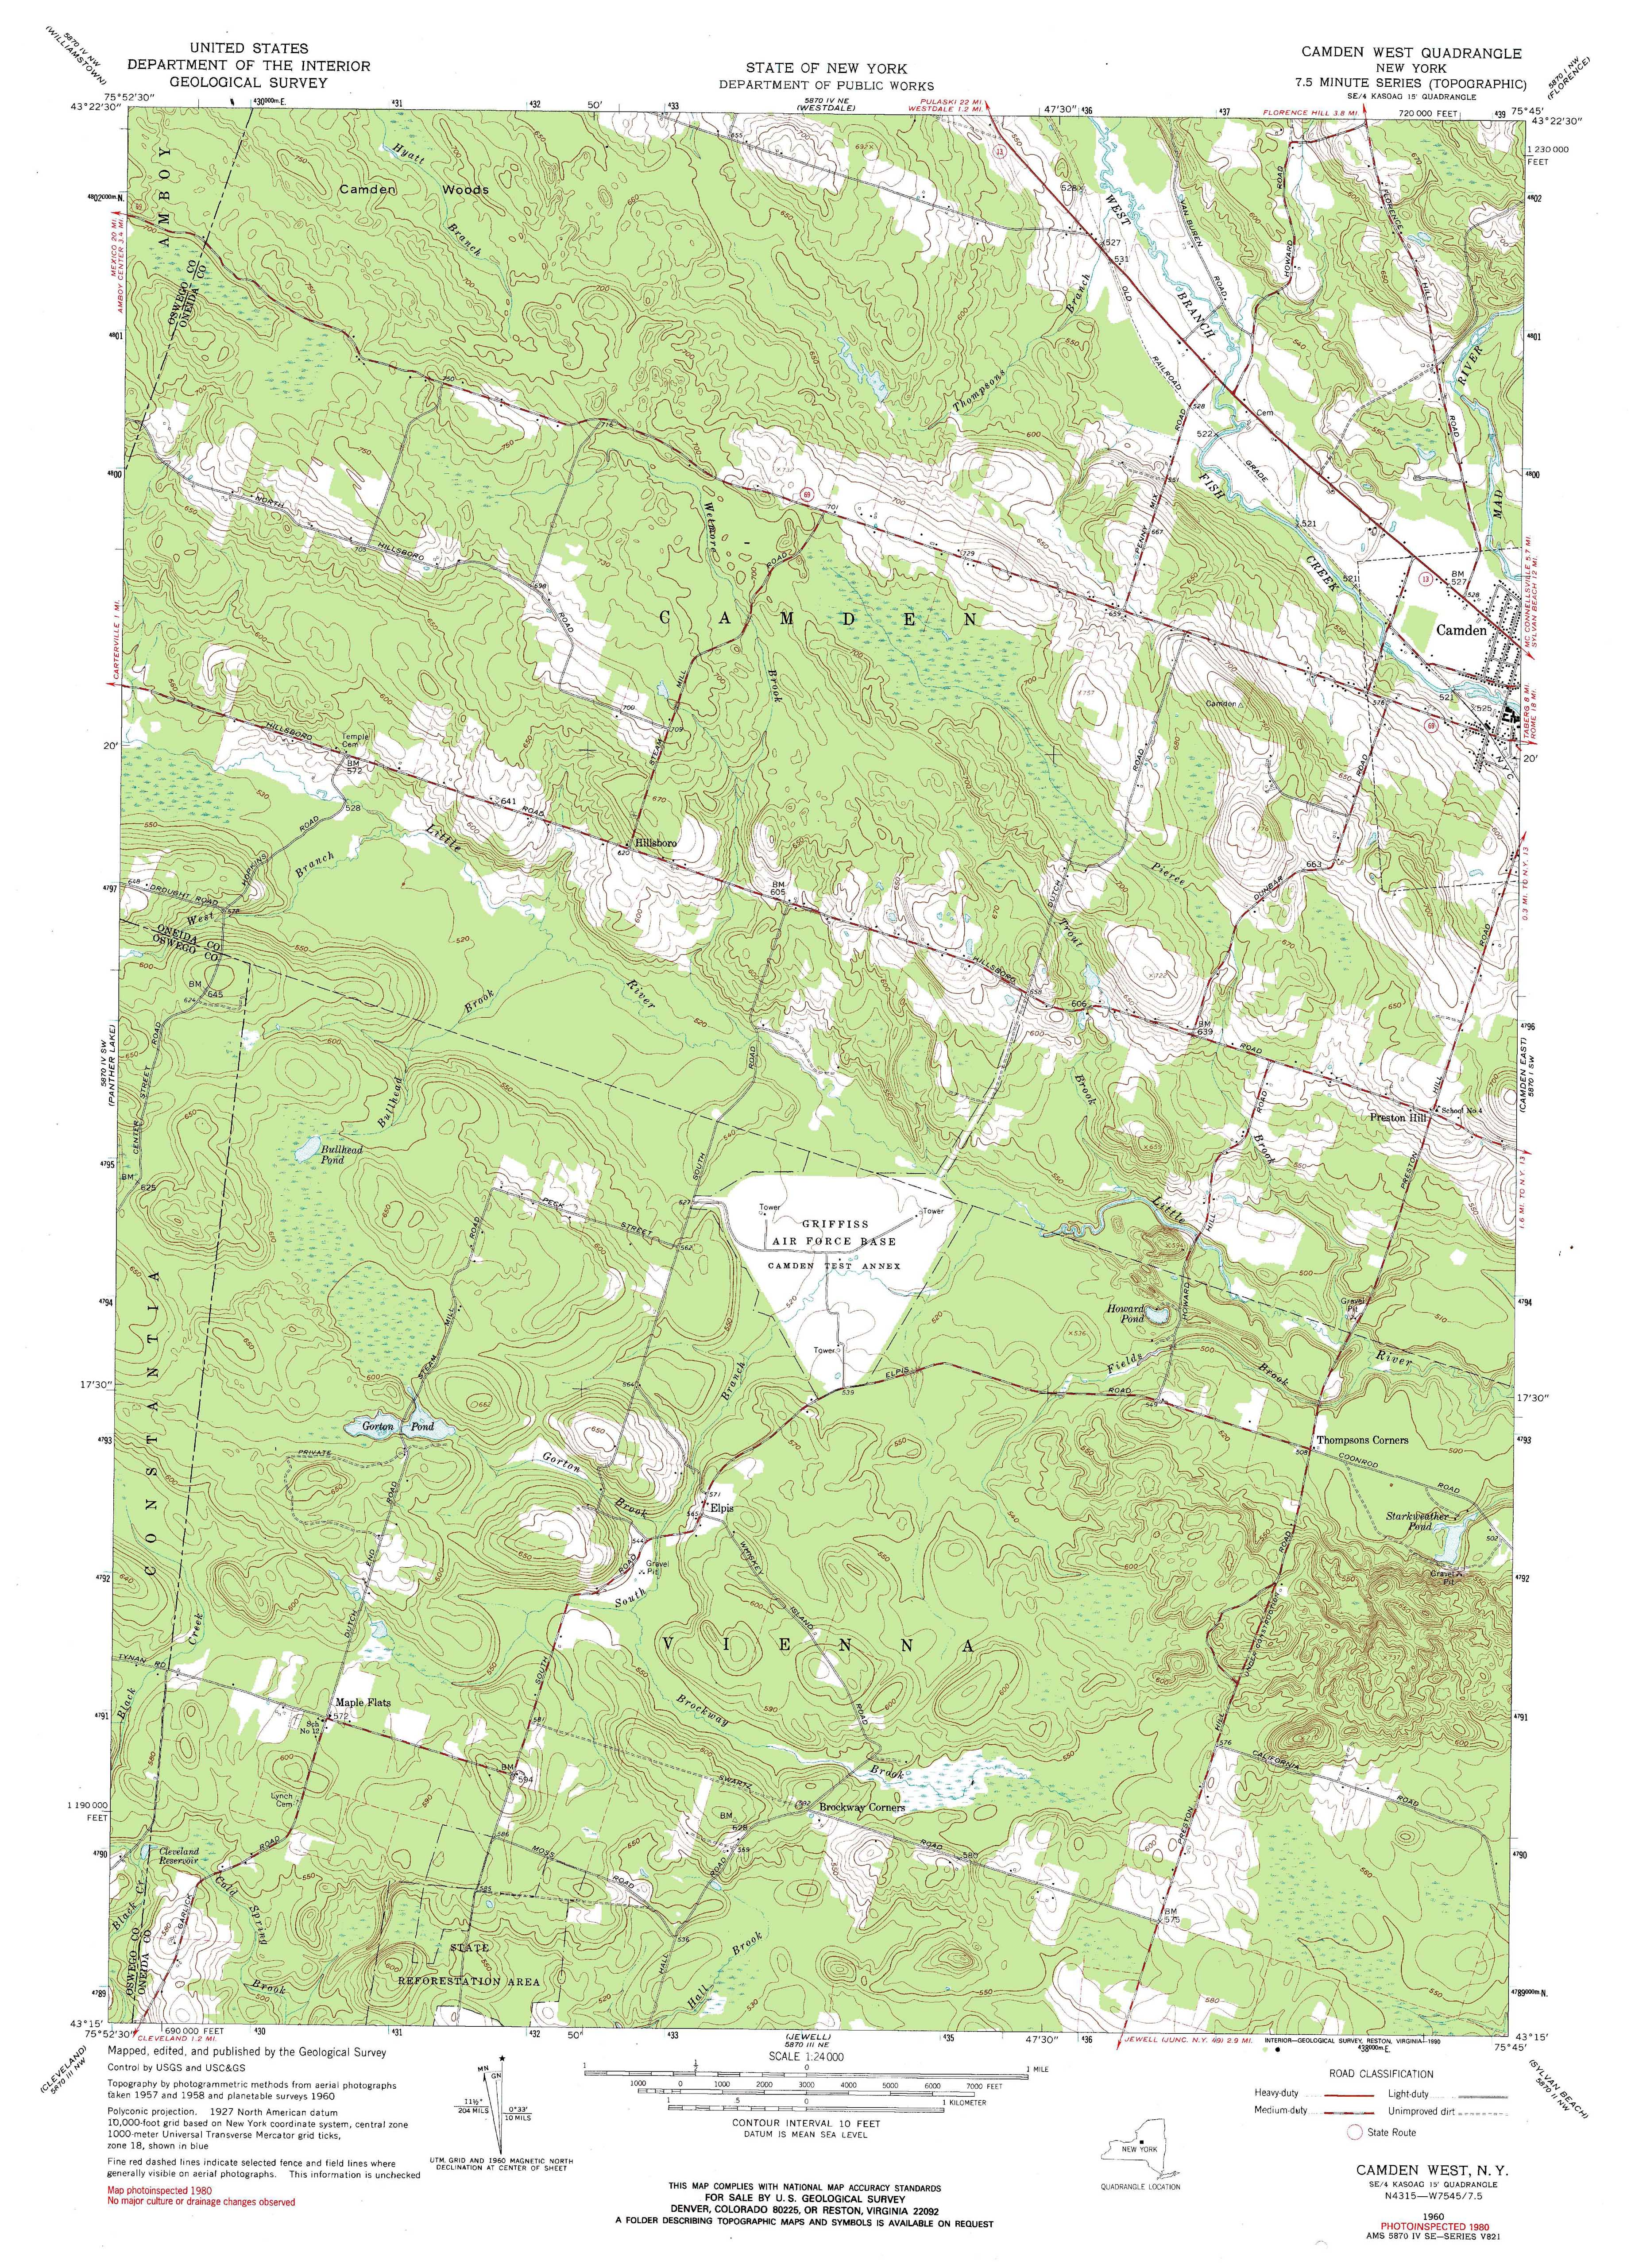 New York Topo Maps Minute Topographic Maps Scale - Where to buy us topo maps